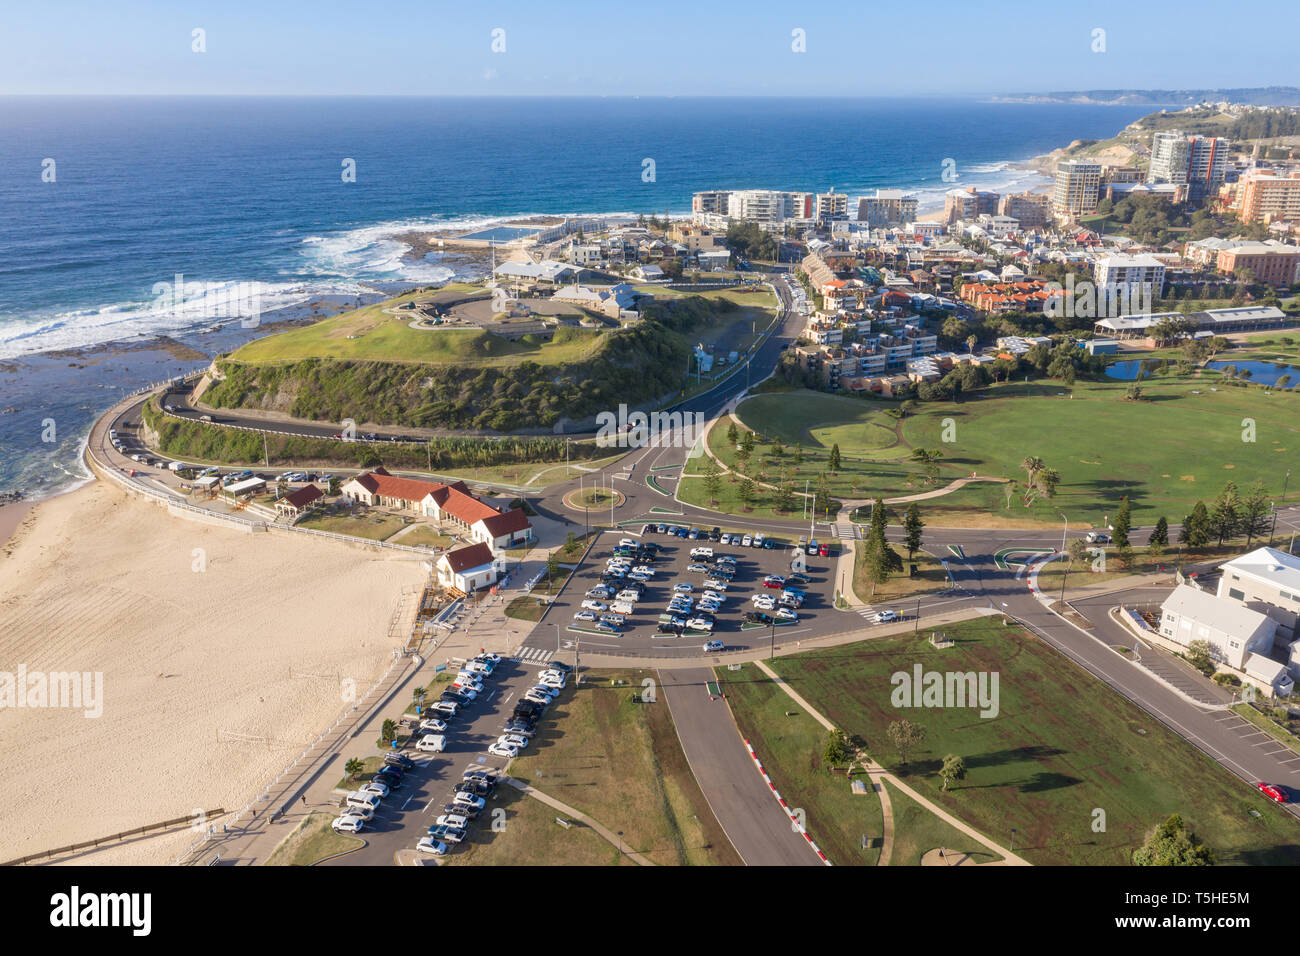 Aerial view of Newcastle featuring Nobbys Beach and Fort Scratchley - Newcastle Beach in background. Newcastle is a major city in NSW Australia. - Stock Image